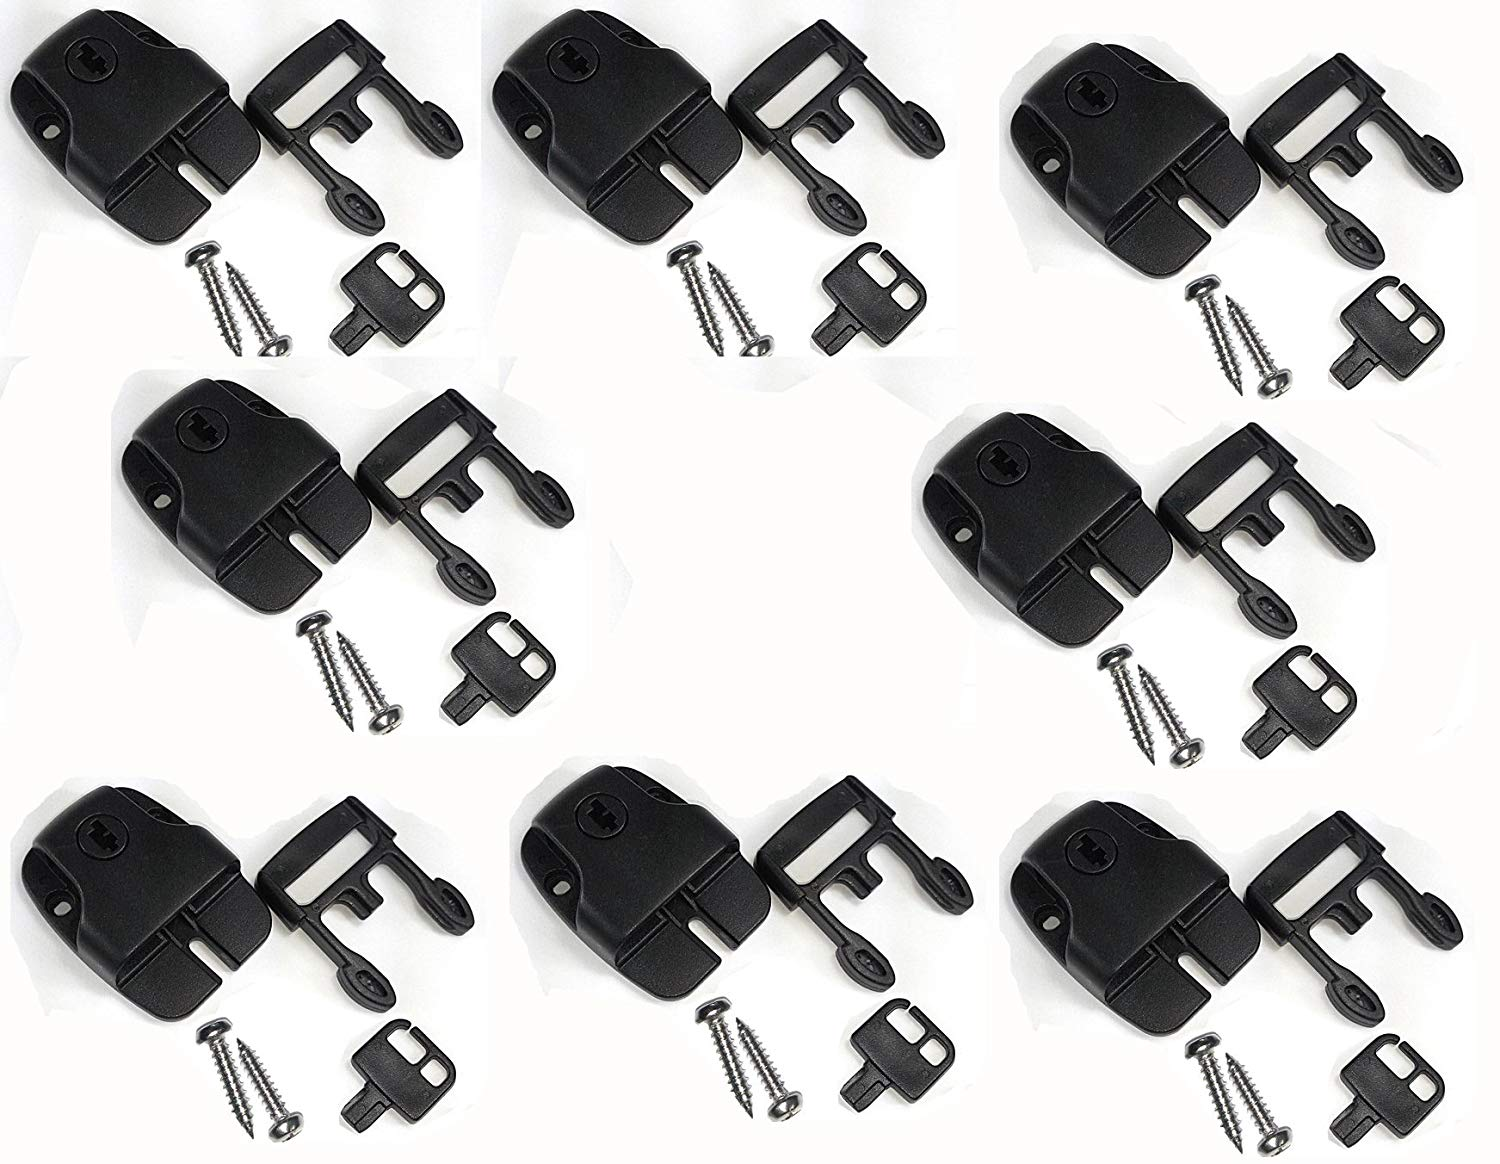 Cheap Case Latch With Key, find Case Latch With Key deals on line at